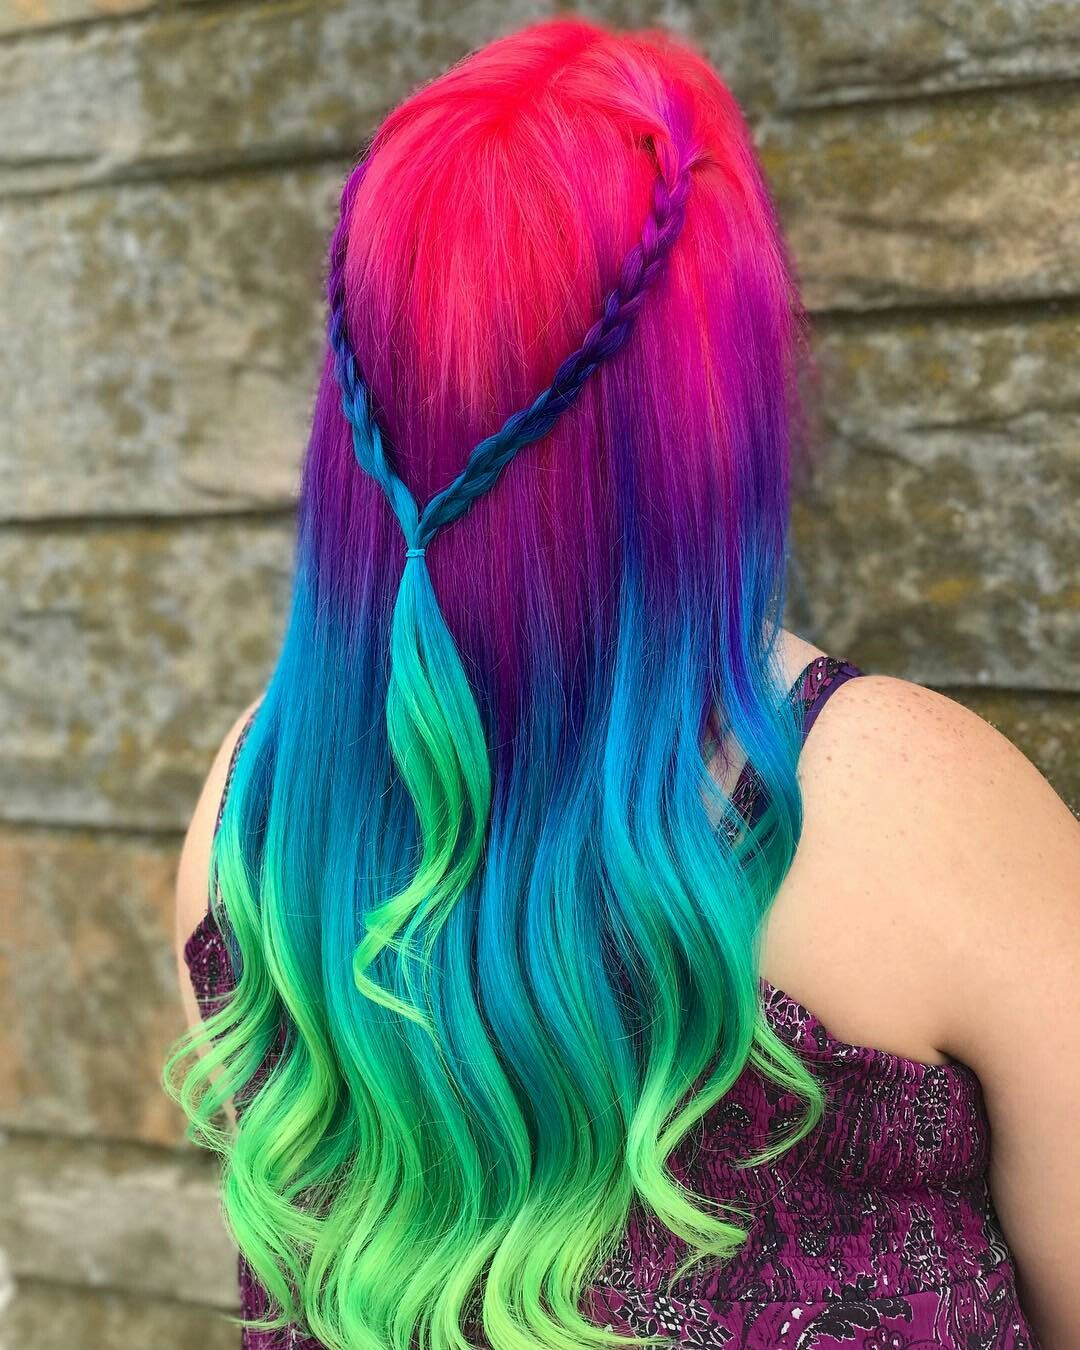 Pin by fancypants boobear on colored hair and piercings pinterest